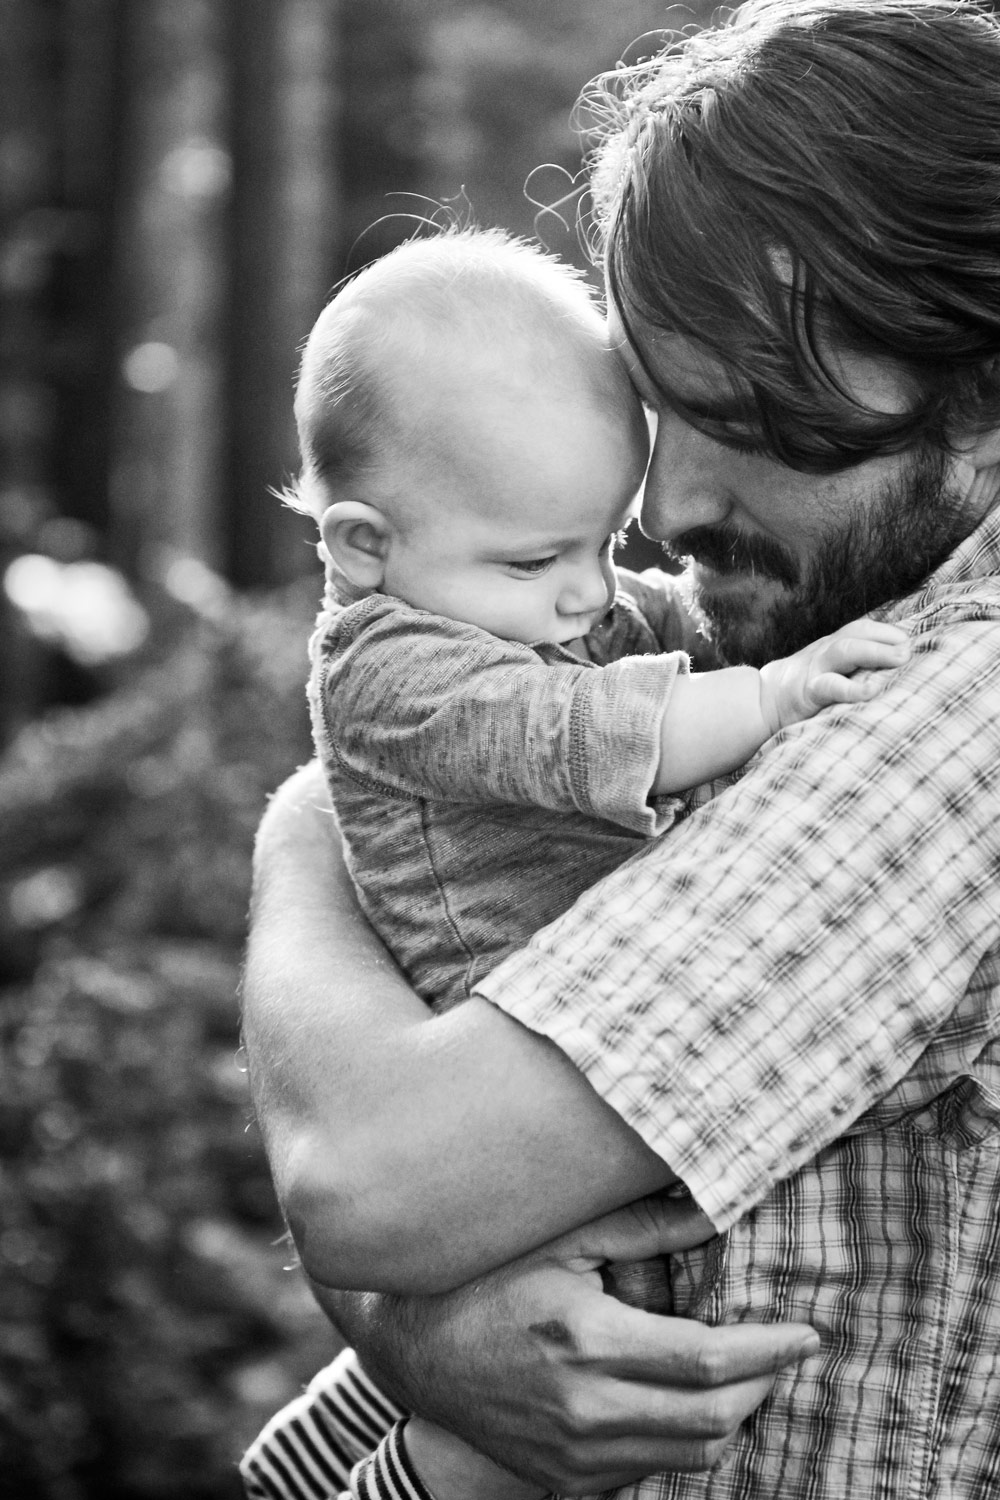 baby-dad-portrait-lifestyle-candid-documentary-journalistic-ruthie-hauge-photography.jpg